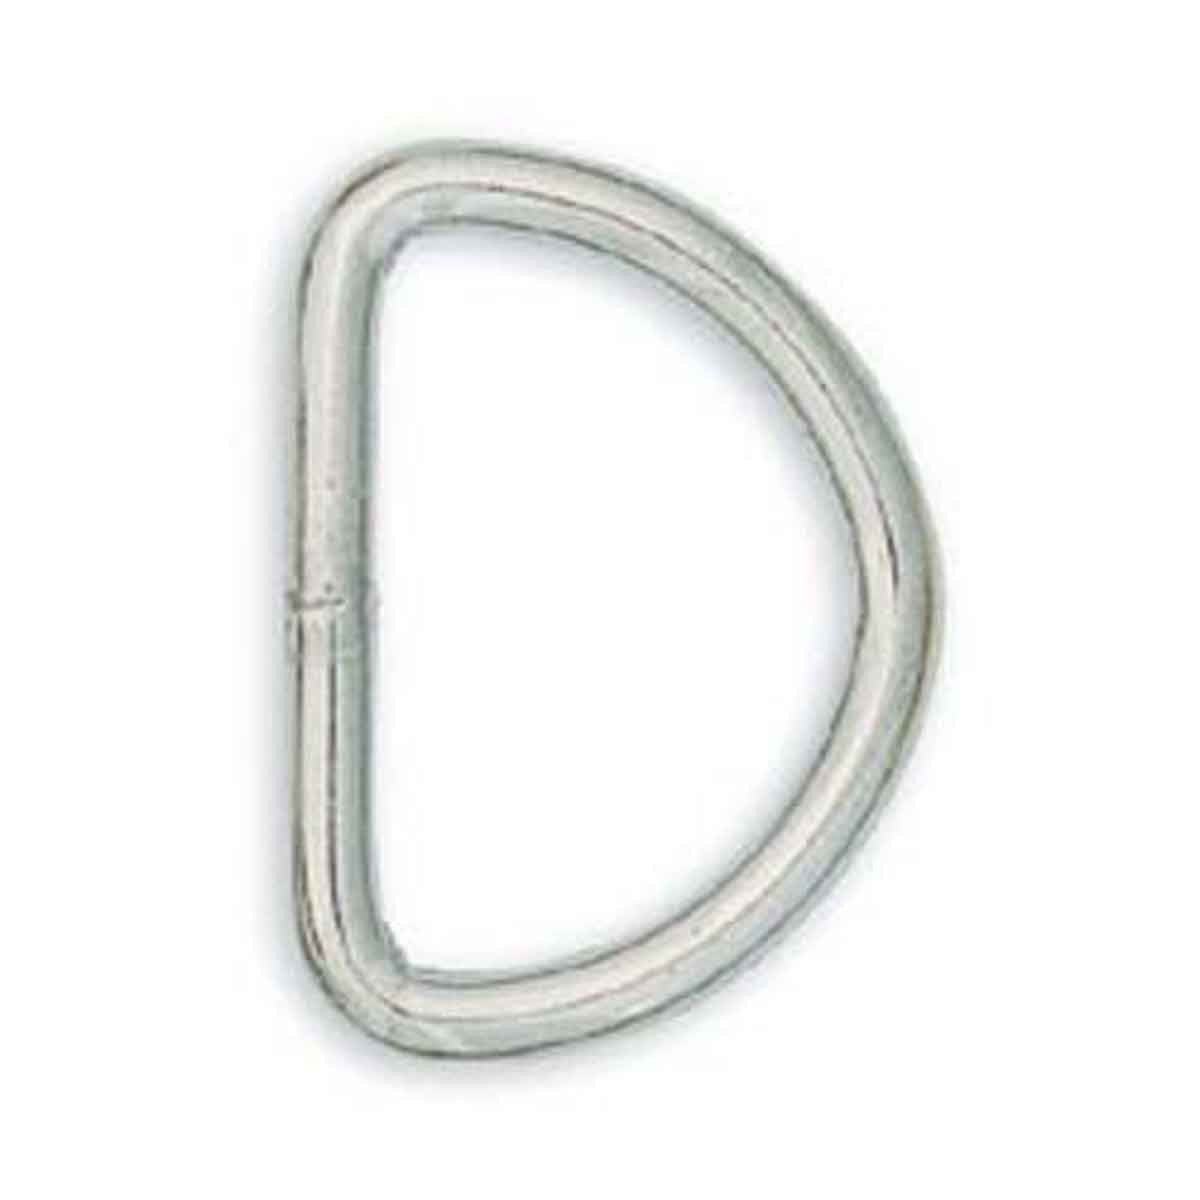 "Solid Dee 1-1/2"" Nickel Plated 10 Pack  1133-12"